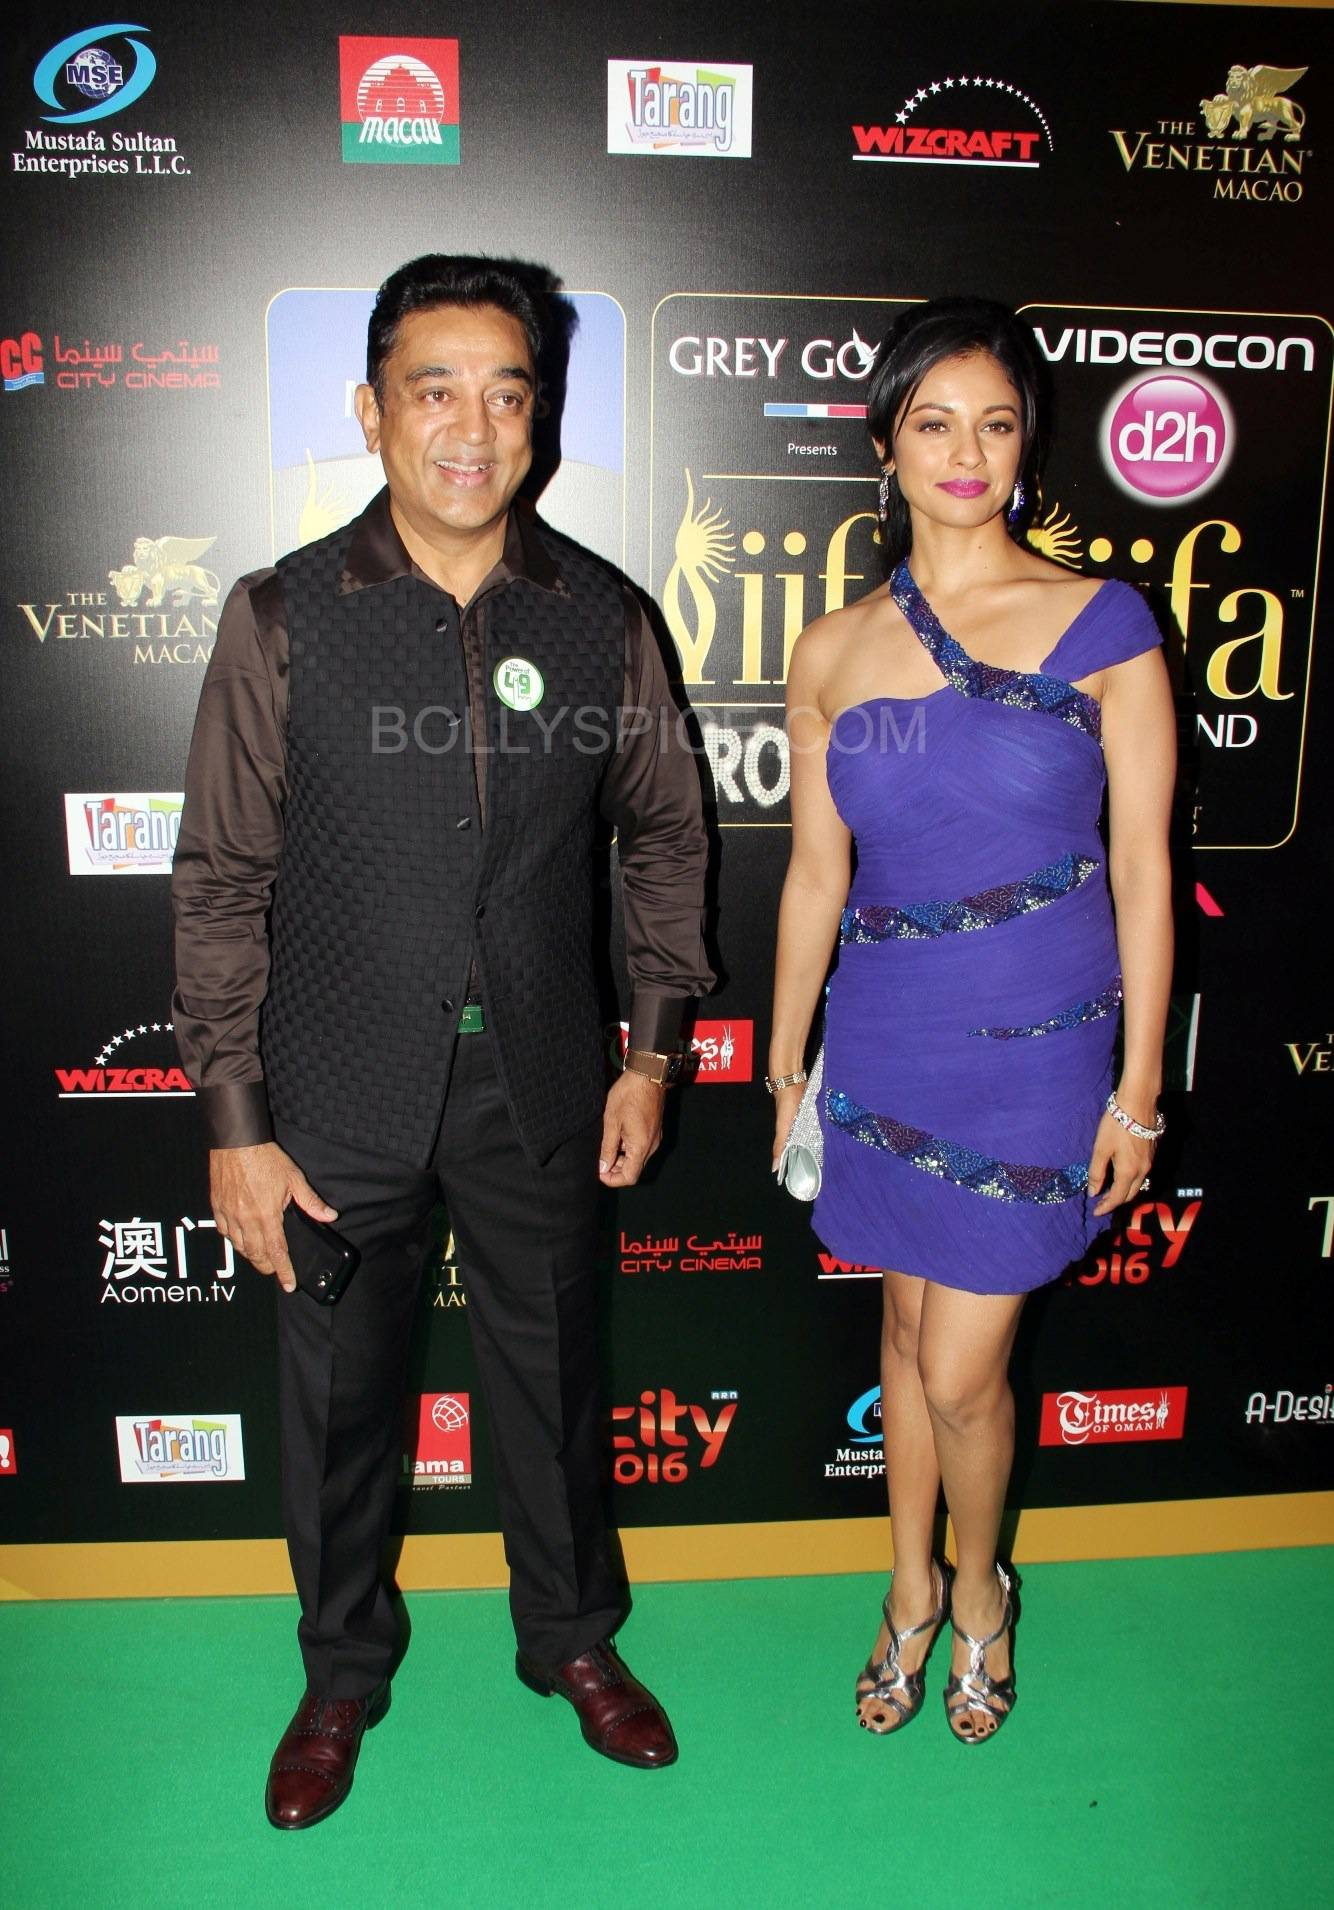 Kamal Haasan at IIFA Rocks Green carpet More from IIFA Rocks including winners and more Green Carpet pics! Pics added!